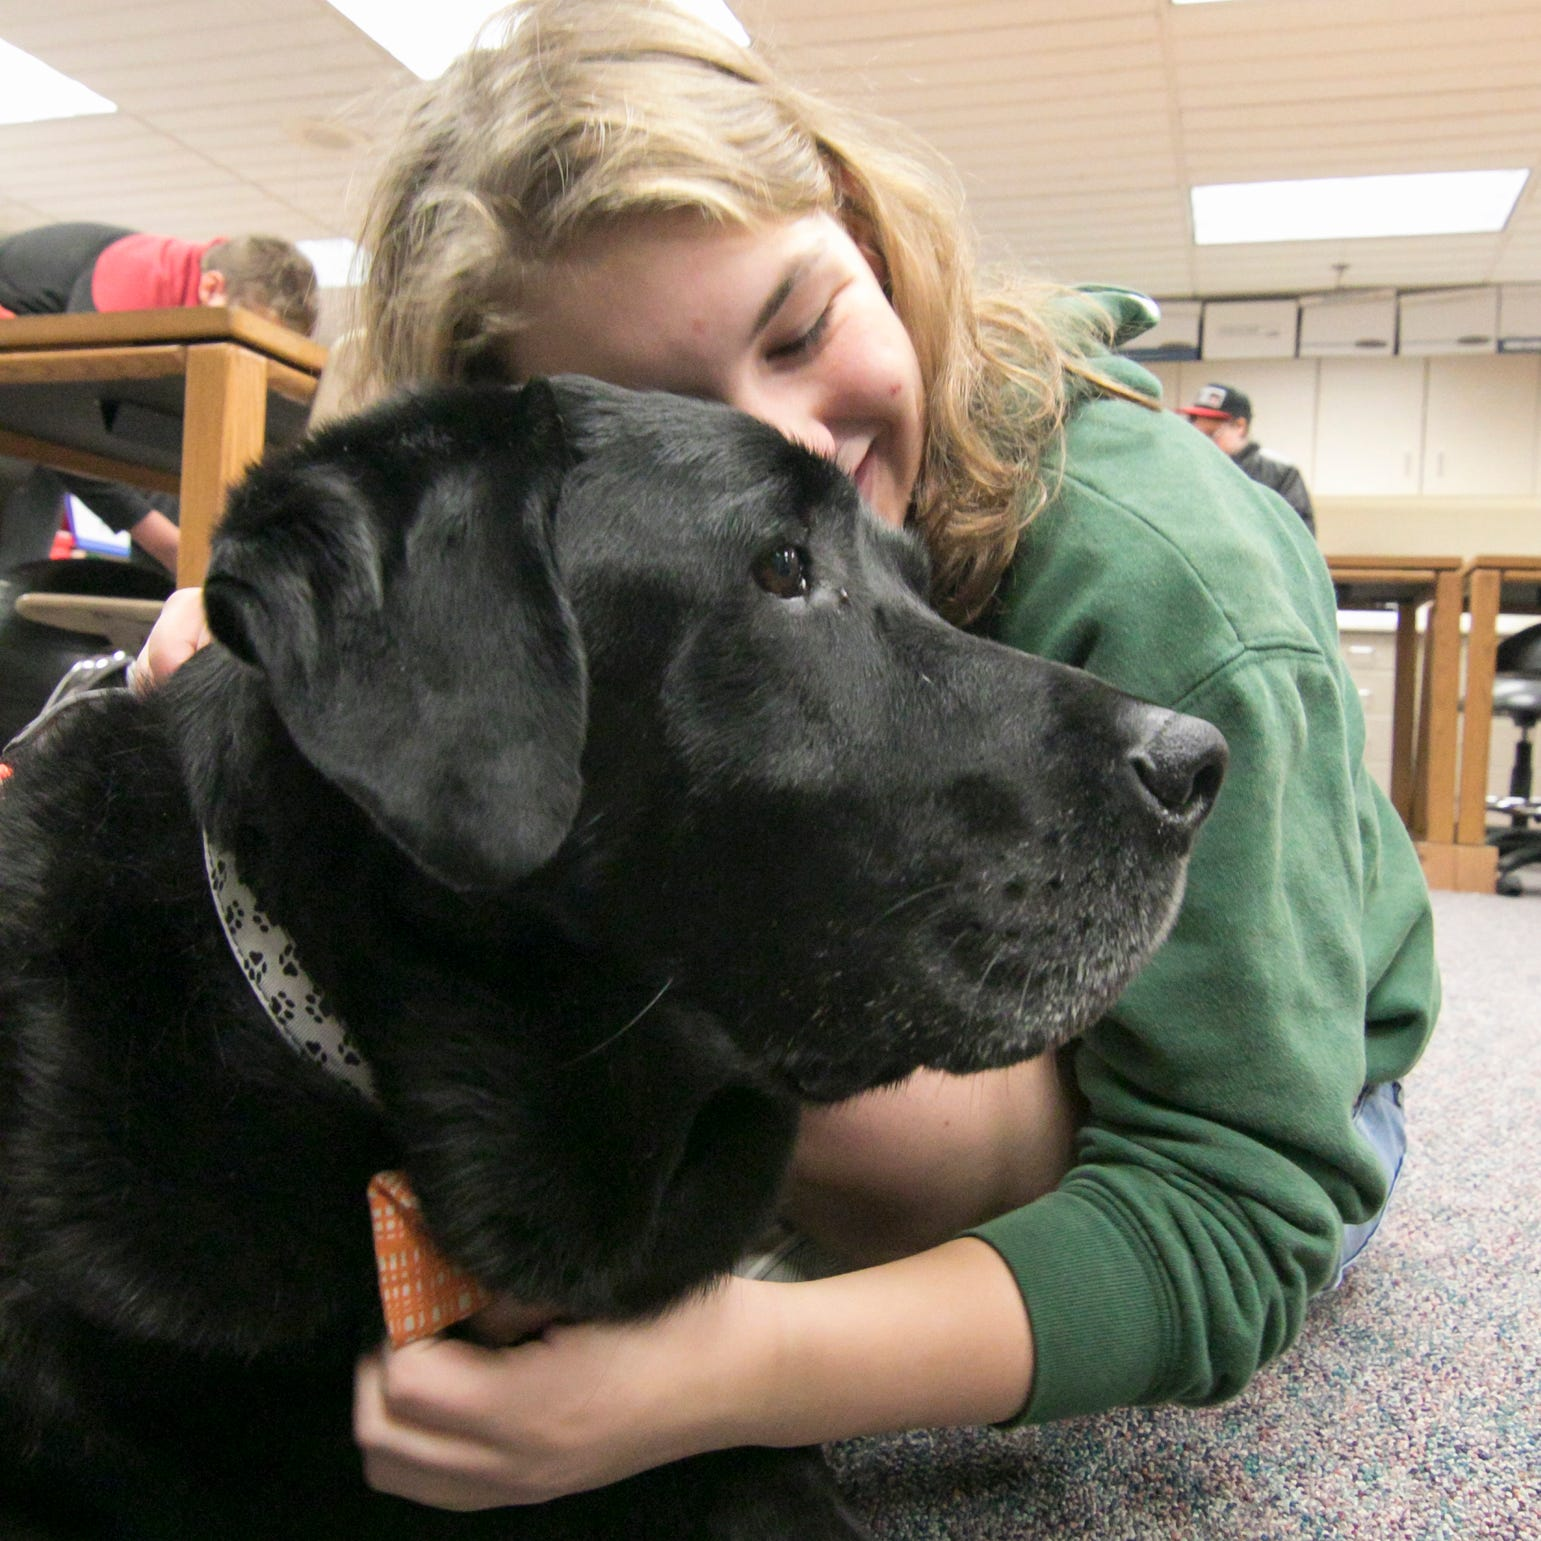 After nearly 10-year effort, Brighton schools plan to have therapy dogs in every building by spring